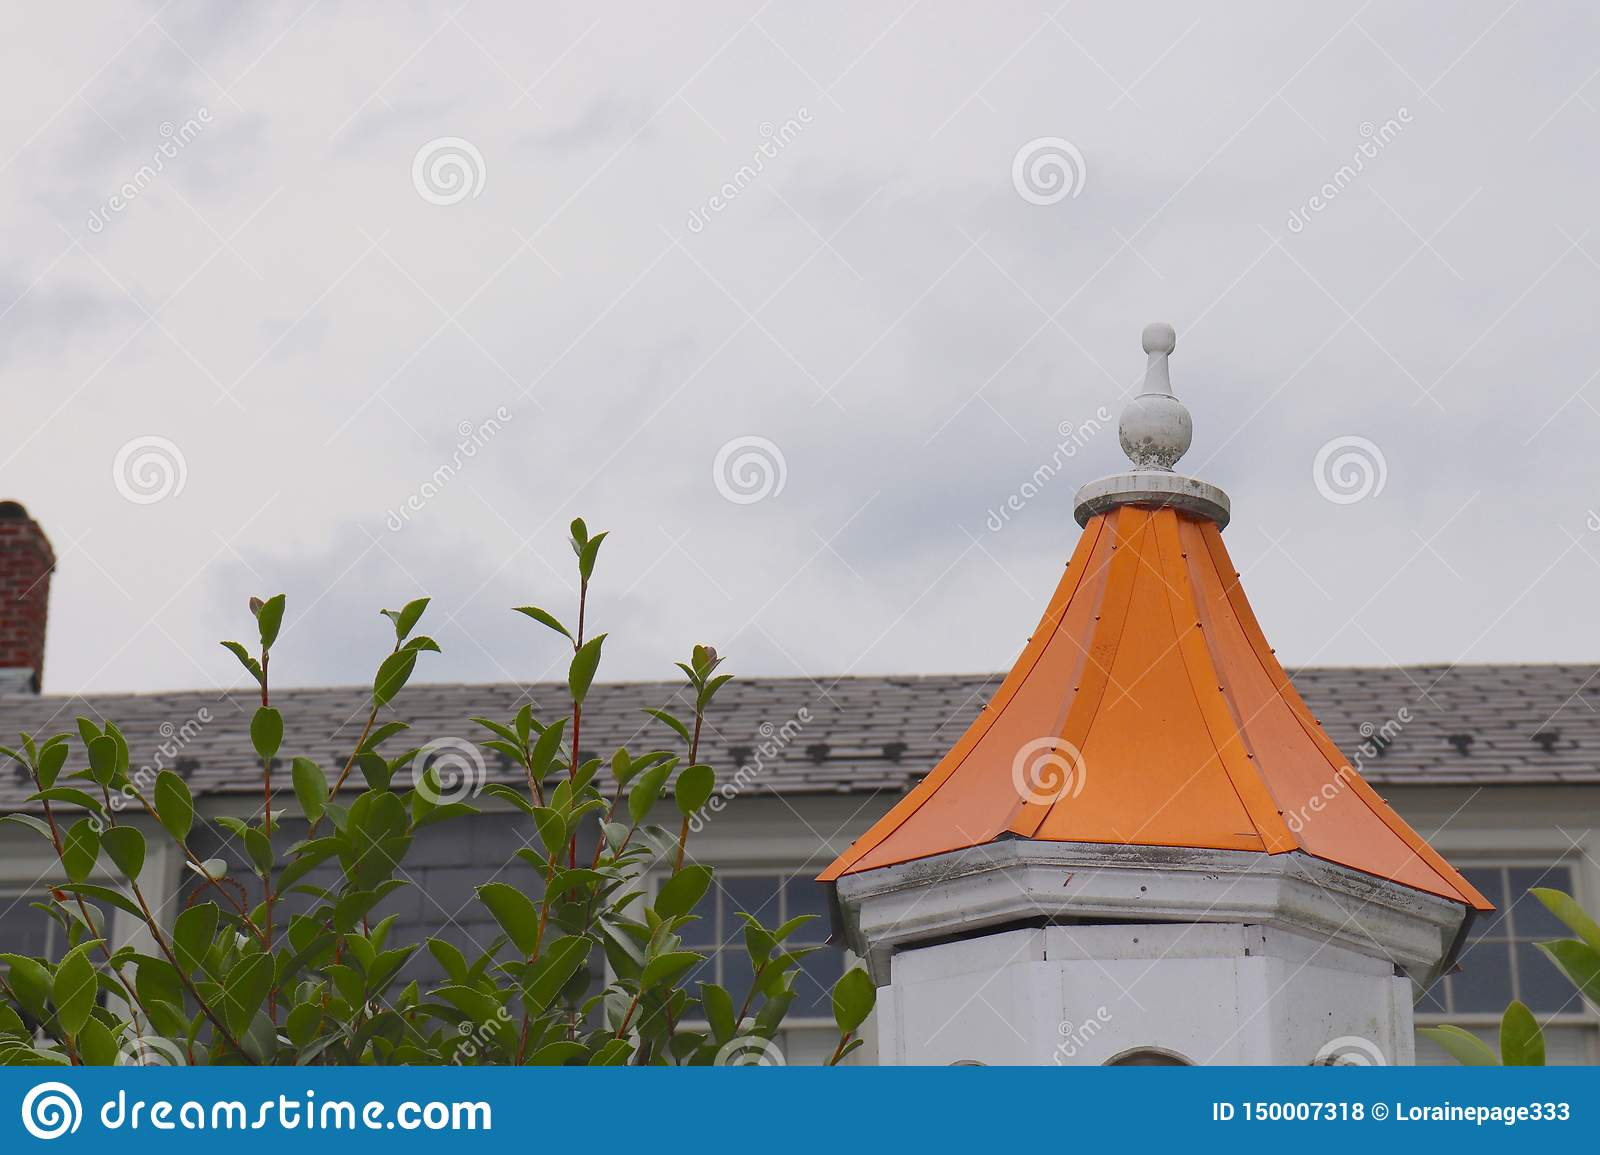 Imposing Orange Steeple Interrupts the Grey Sternness of This Sky and Rooftop Scene